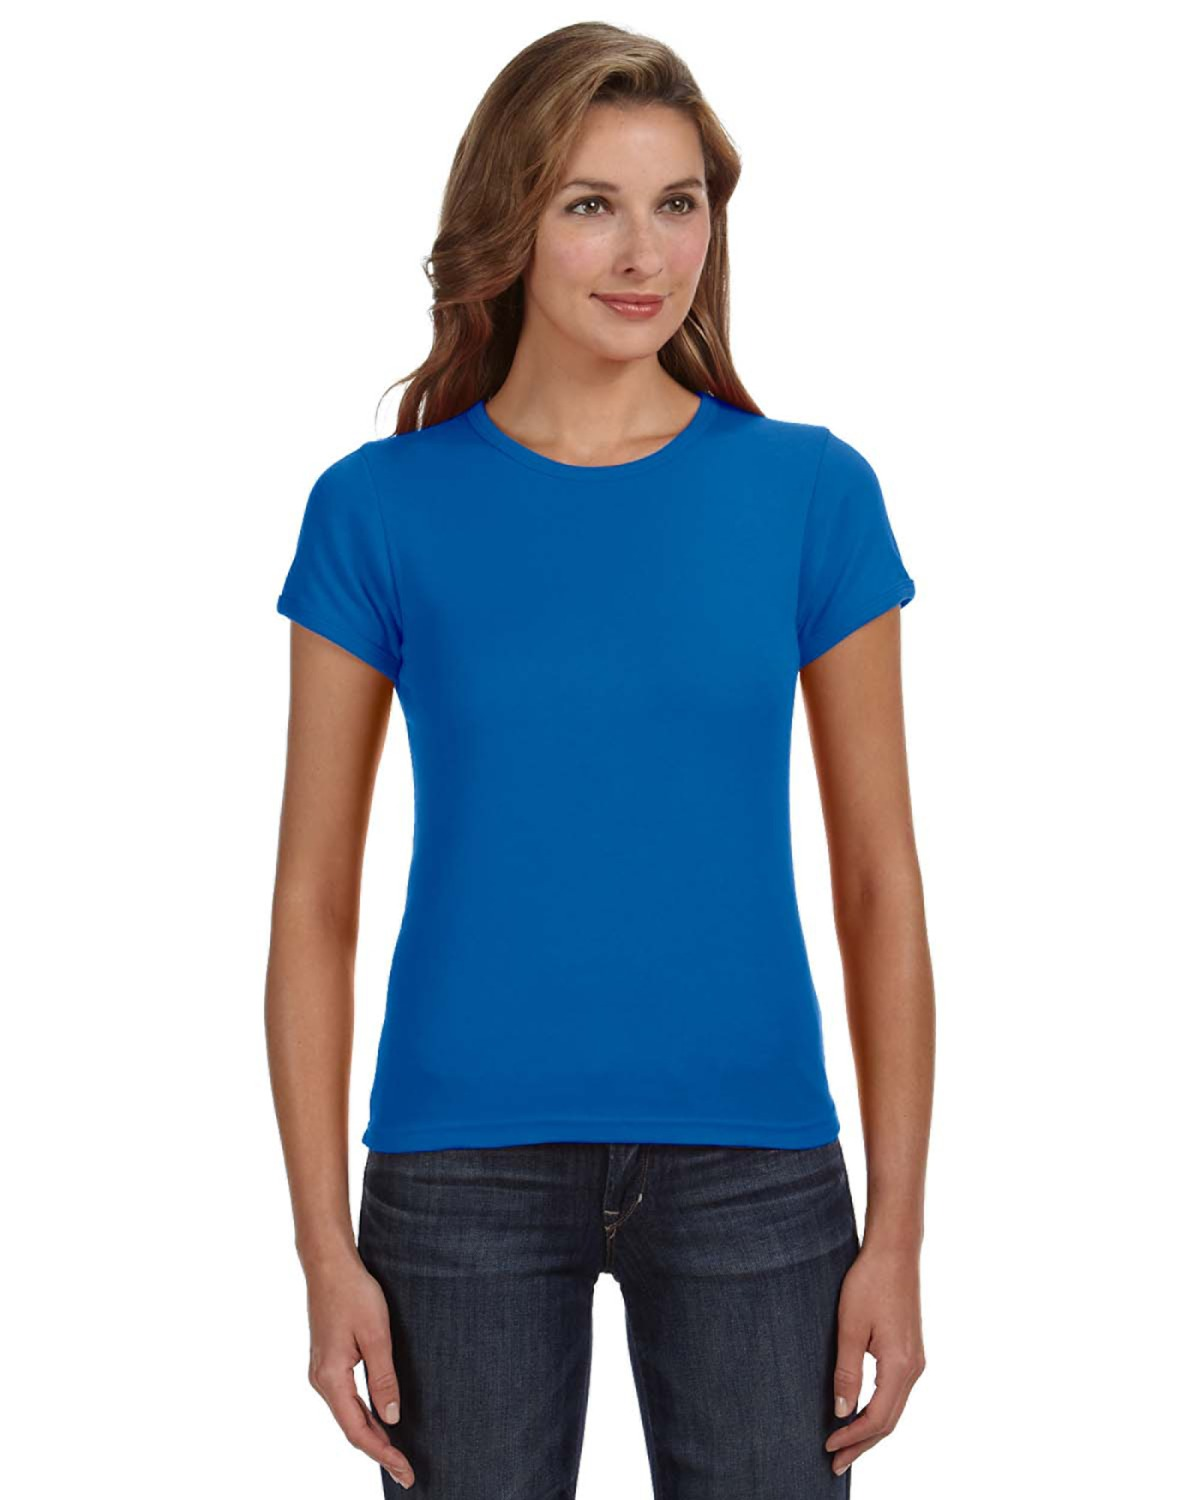 Anvil 1441 – Ladies' 1×1 Baby Rib Scoop T-Shirt 1